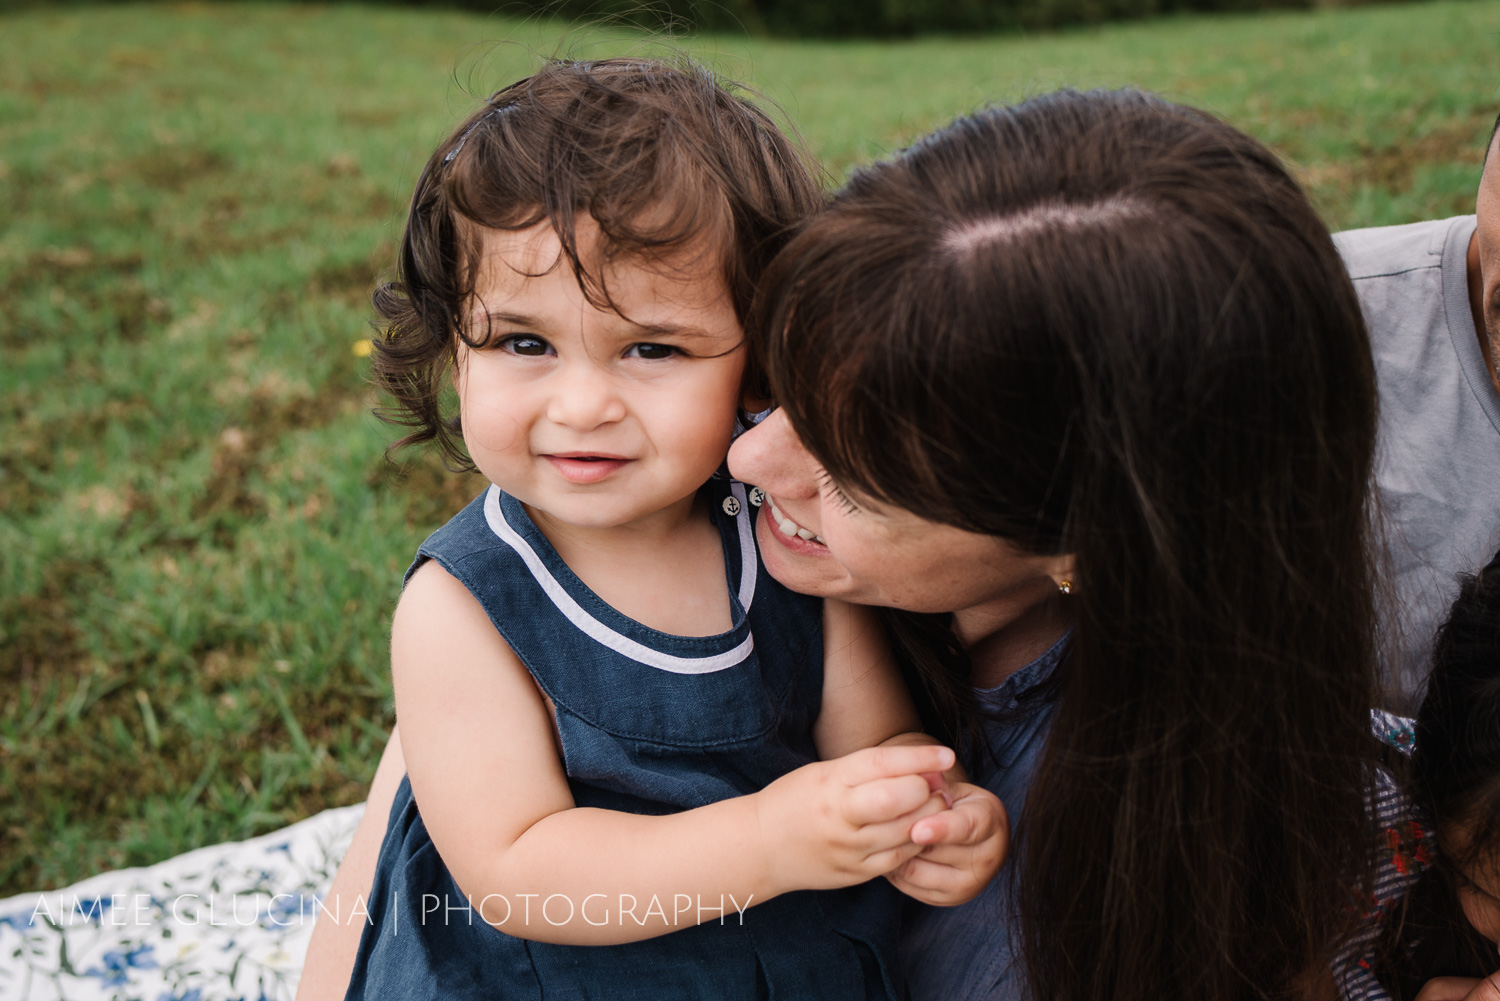 Brent Family Session by Aimee Glucina Photography-38.jpg